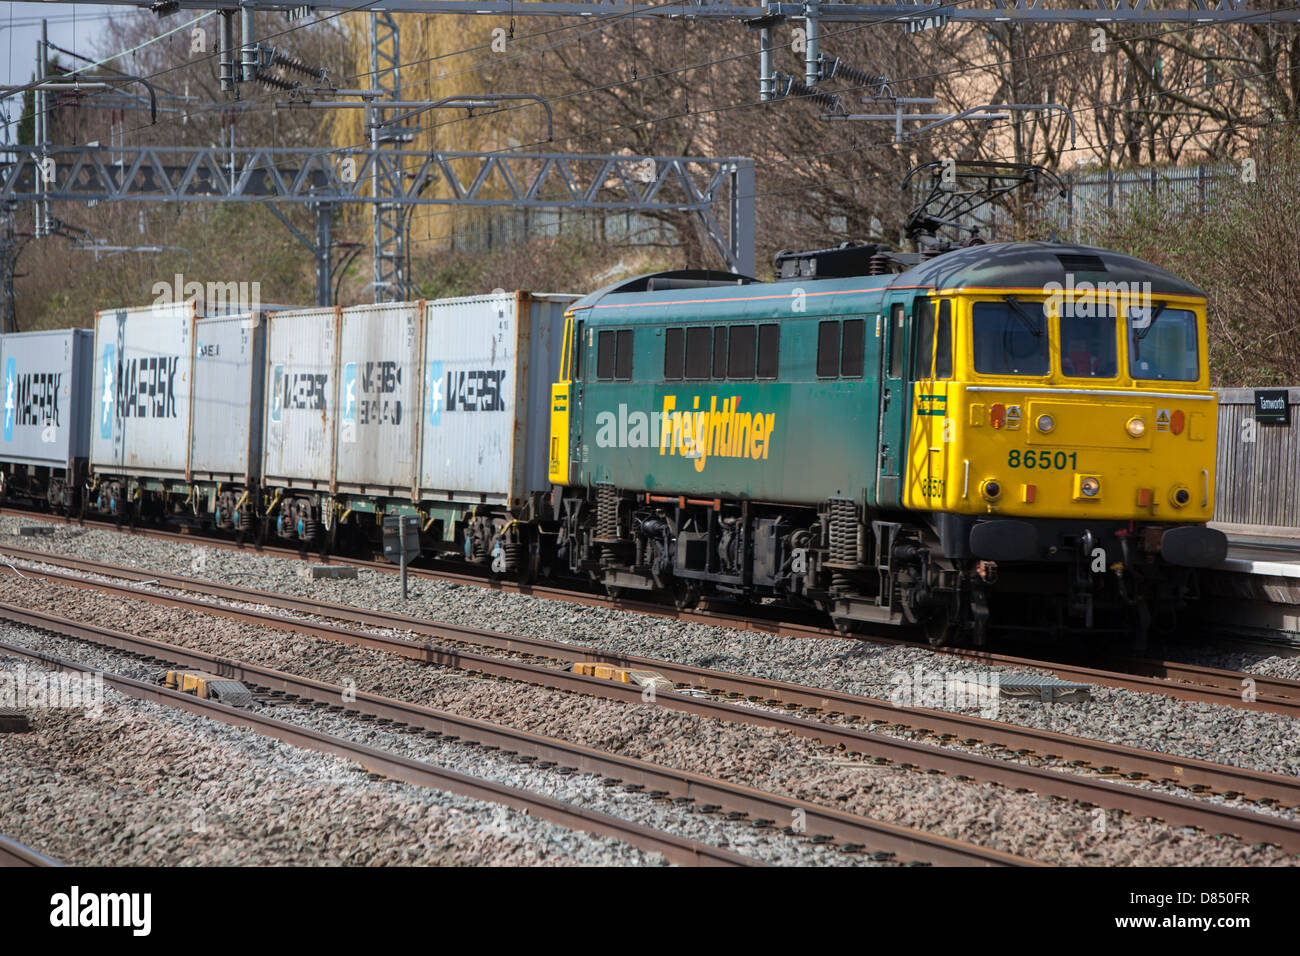 A Freightliner train passing through Tamworth station on the low level line. Hauling intermodal containers. - Stock Image